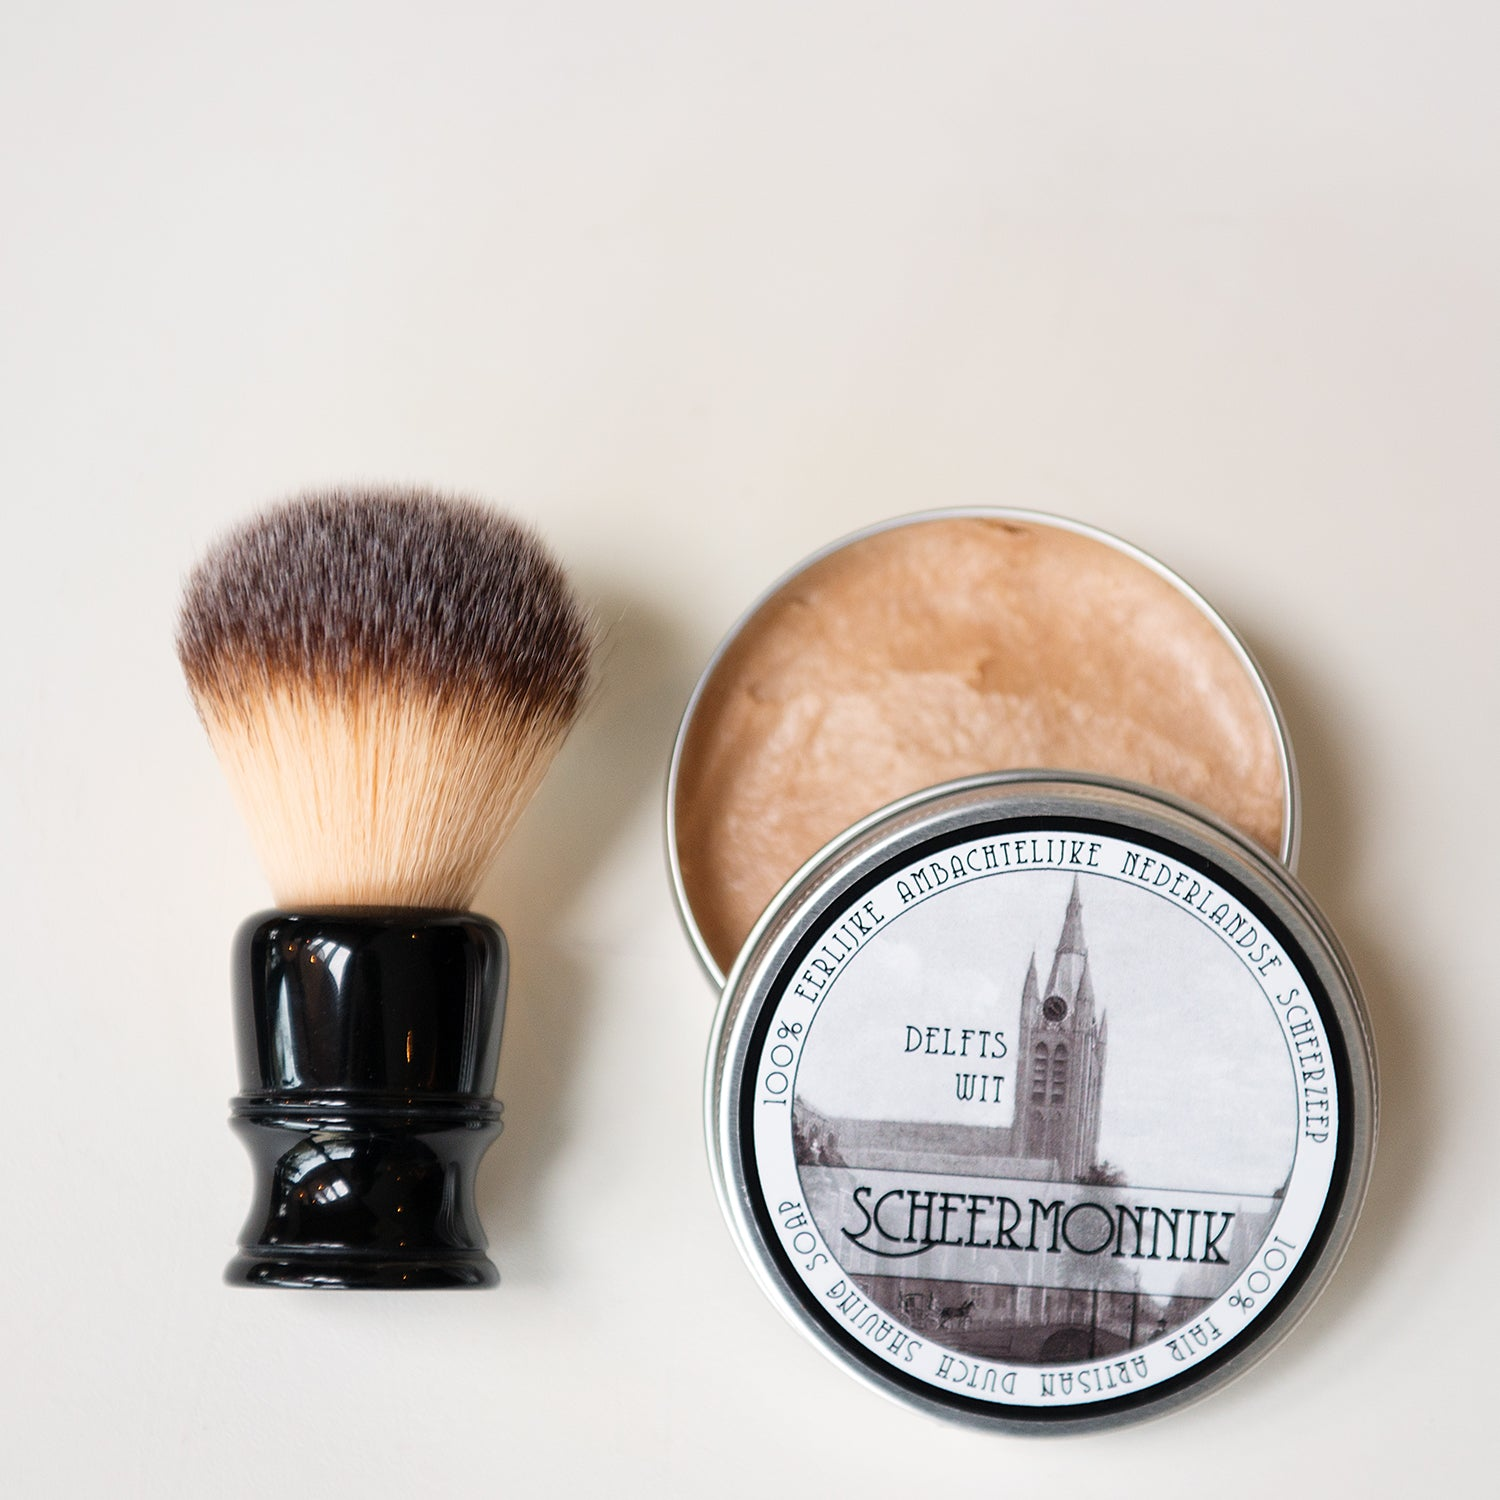 SCHEERMONNIK  My name is Henri van Gool. I have experienced good shaving products at a store Manandshaving.nl. More like a hobby I got involved in honing and sharpening of straight razors and got enthusiastic for starting a business of my own.  Until a few years ago there was no artisanal soap production company in the Netherlands.  All nice shaving soaps available were produced by companies abroad.